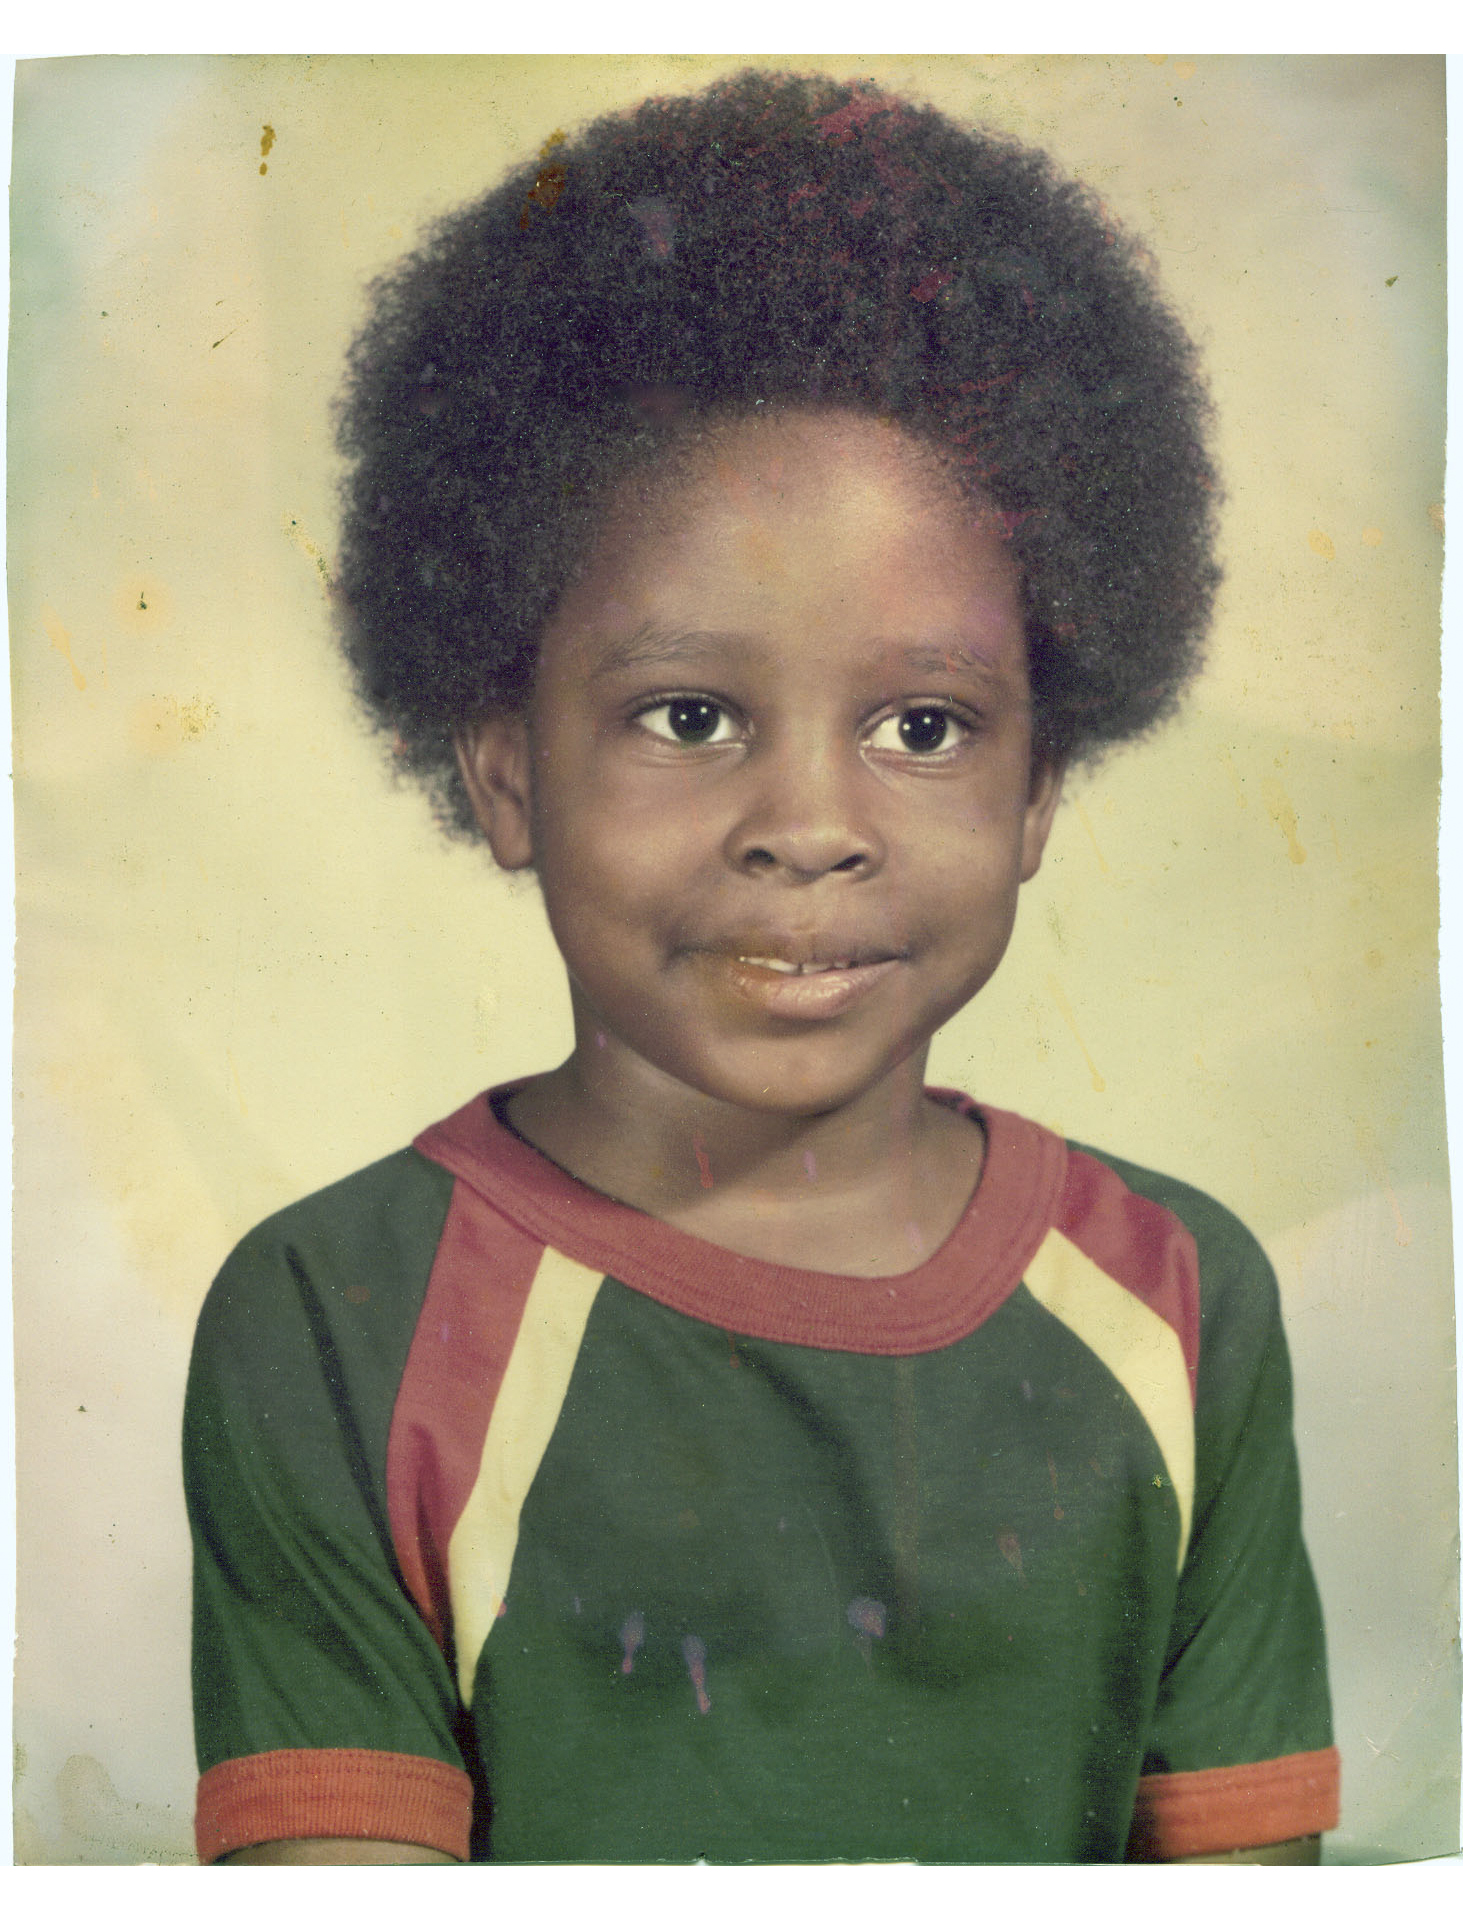 #throwback Tarrice at 5 years old. Precious.